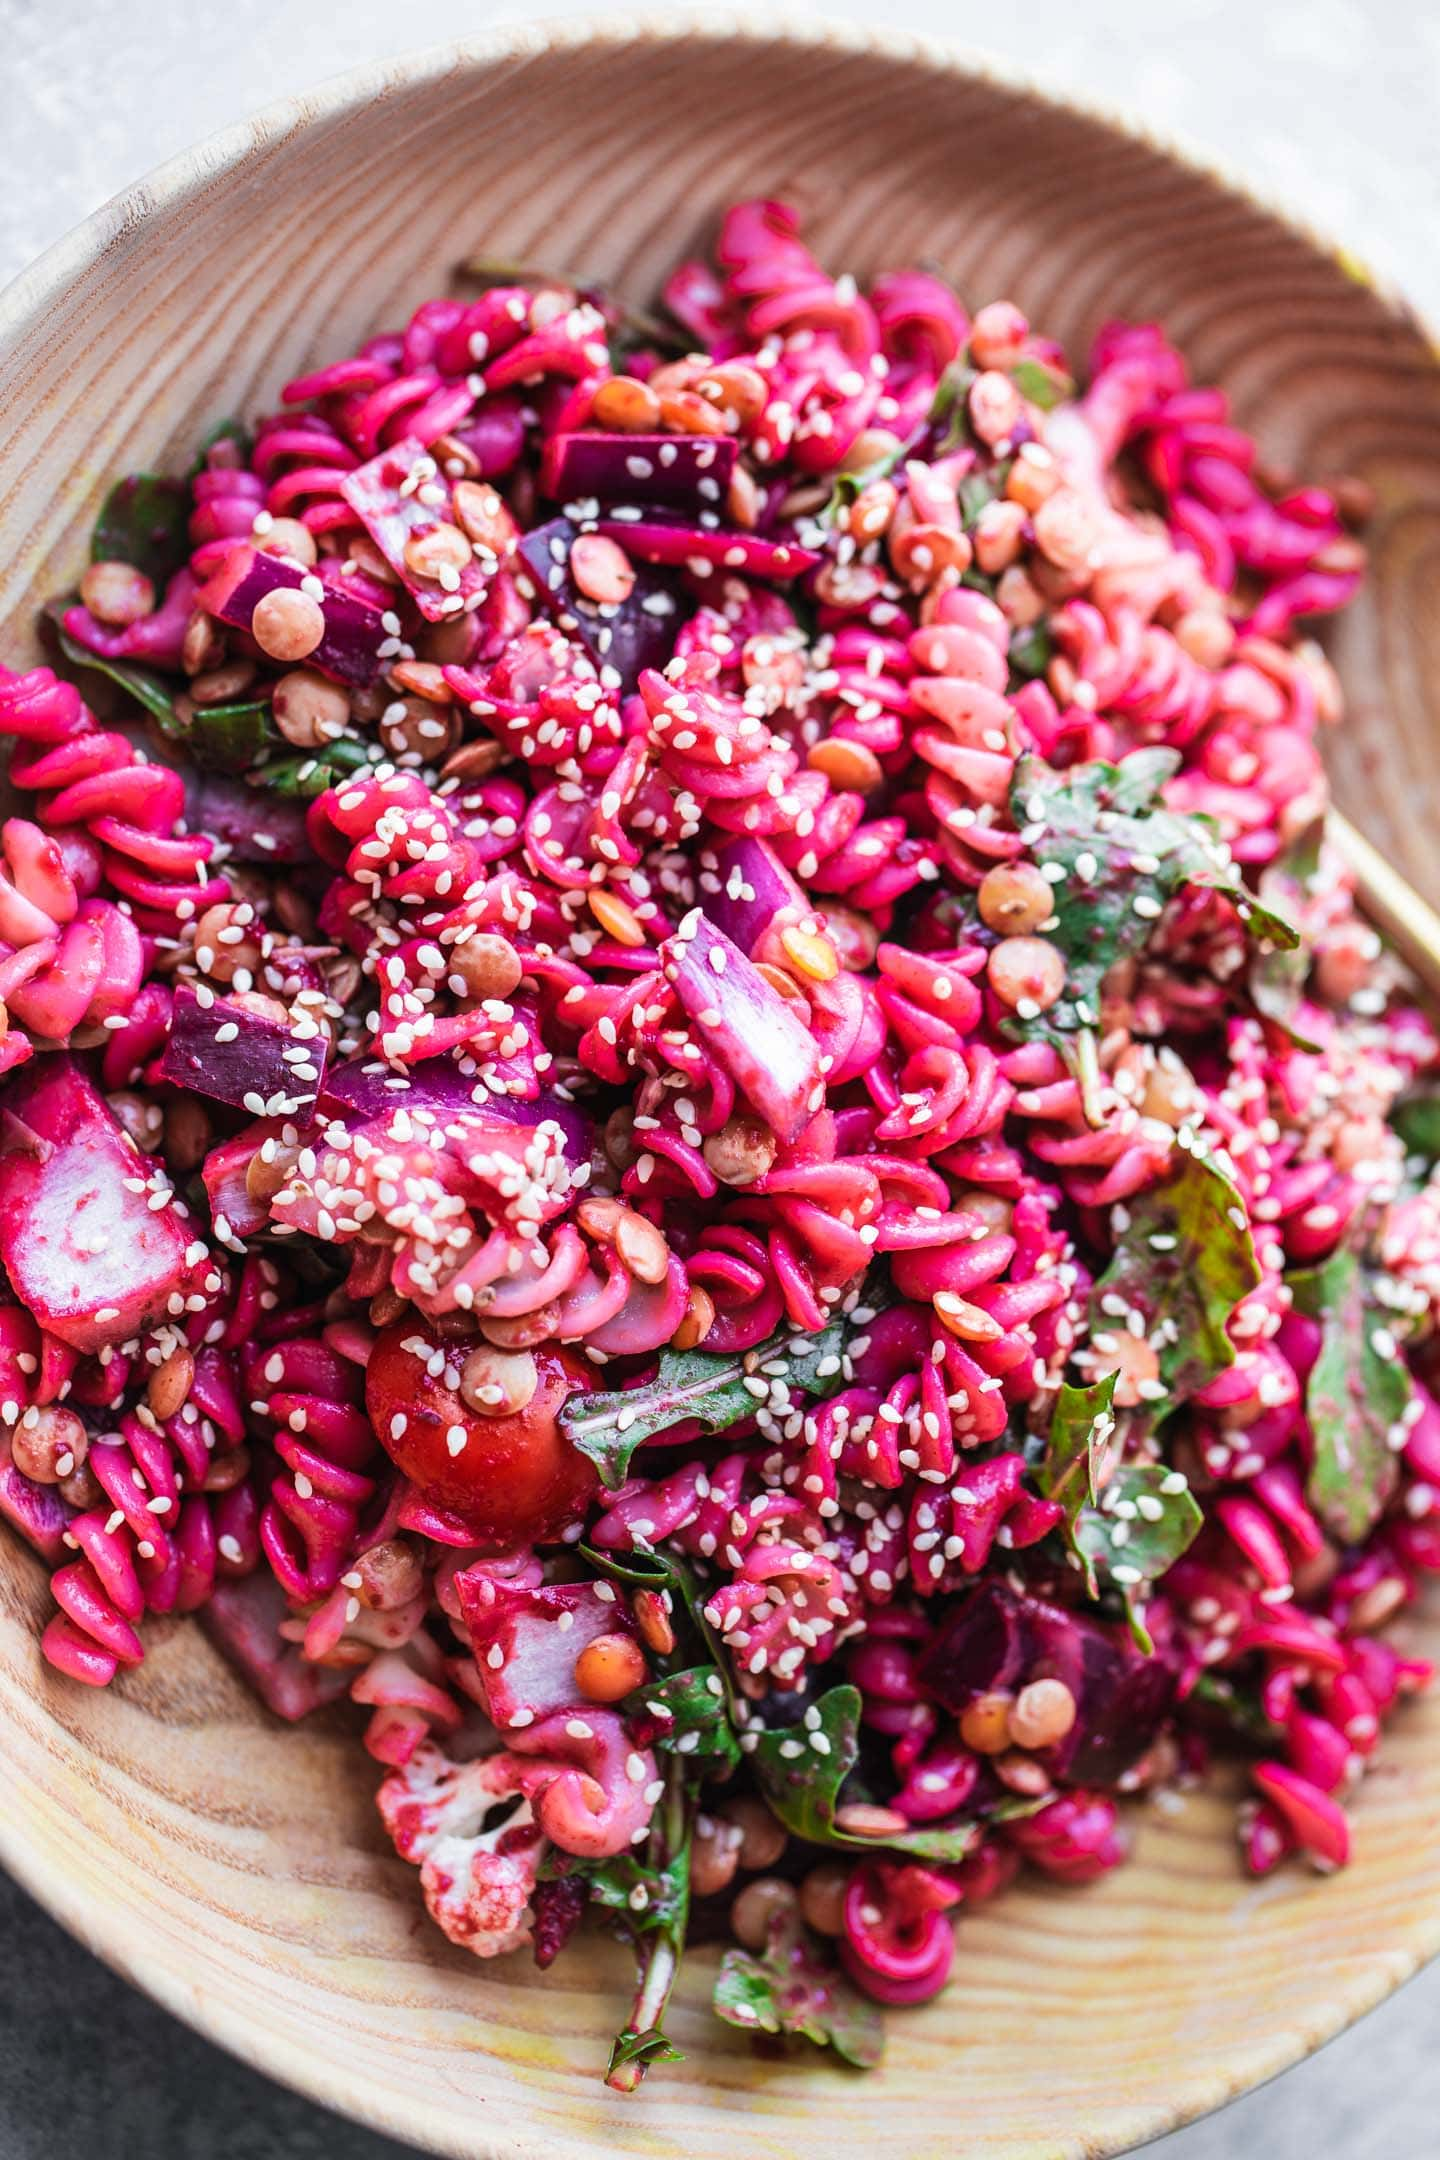 Bowl of beetroot pasta salad with green lentils